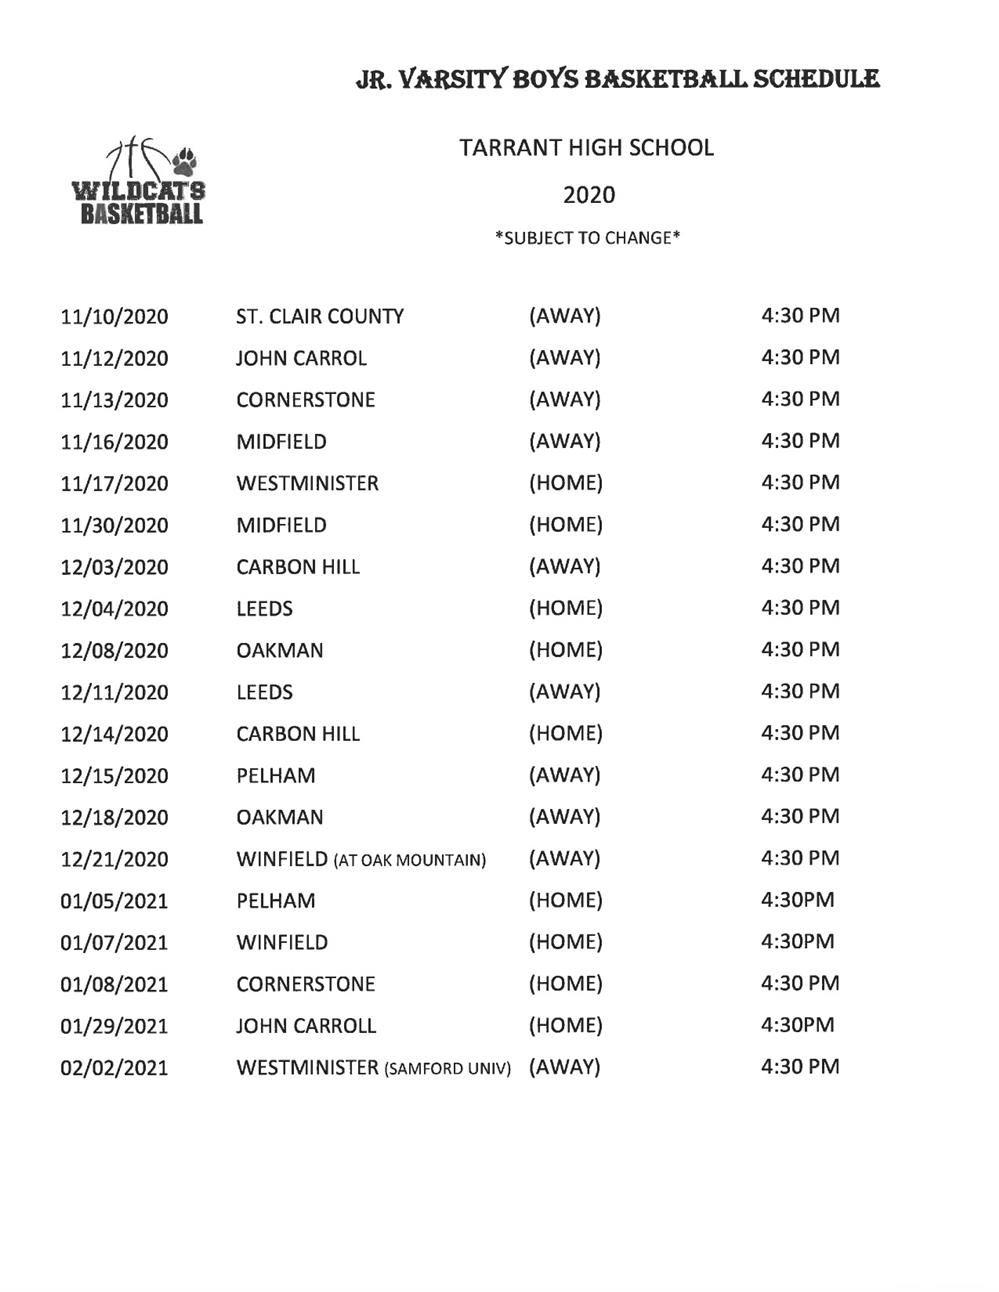 Tarrant High School JV Basketball Schedule